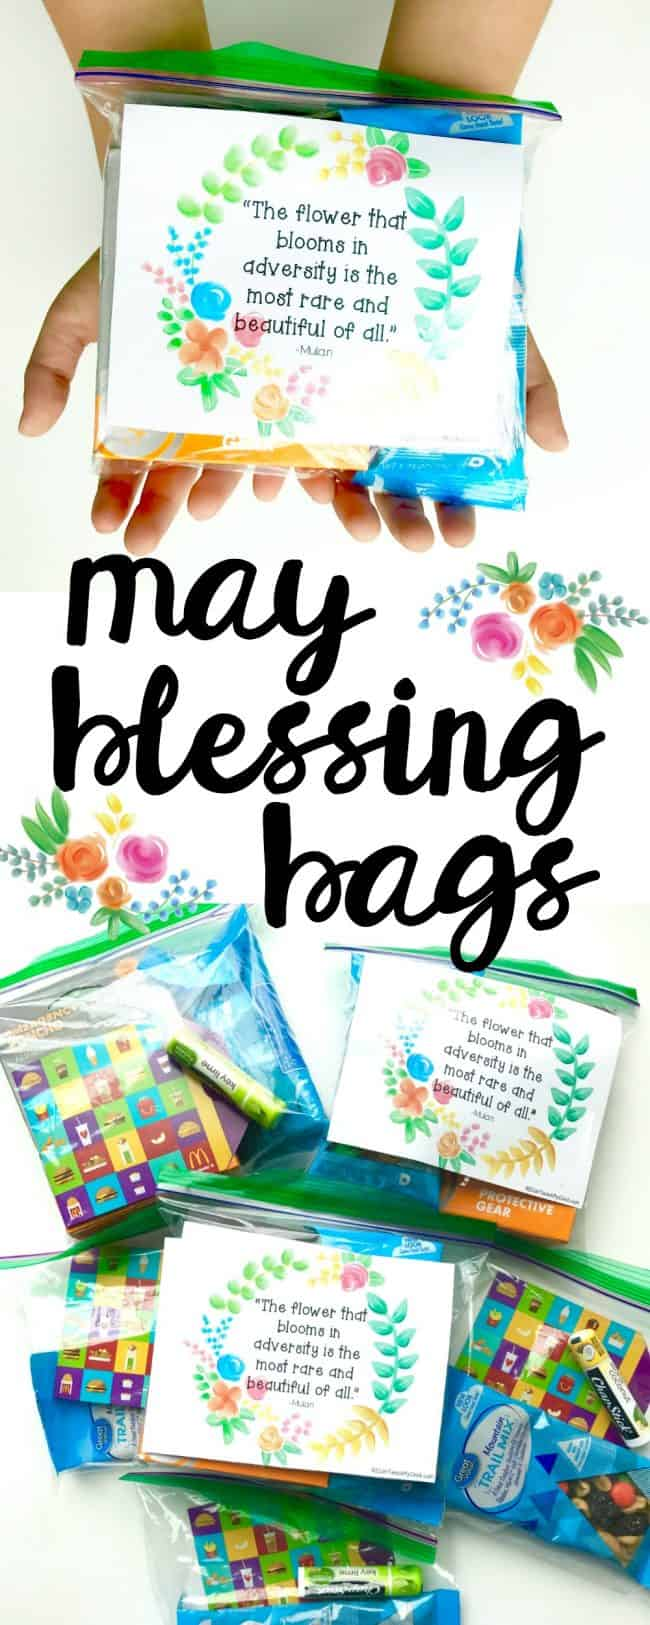 May Blessing Bags